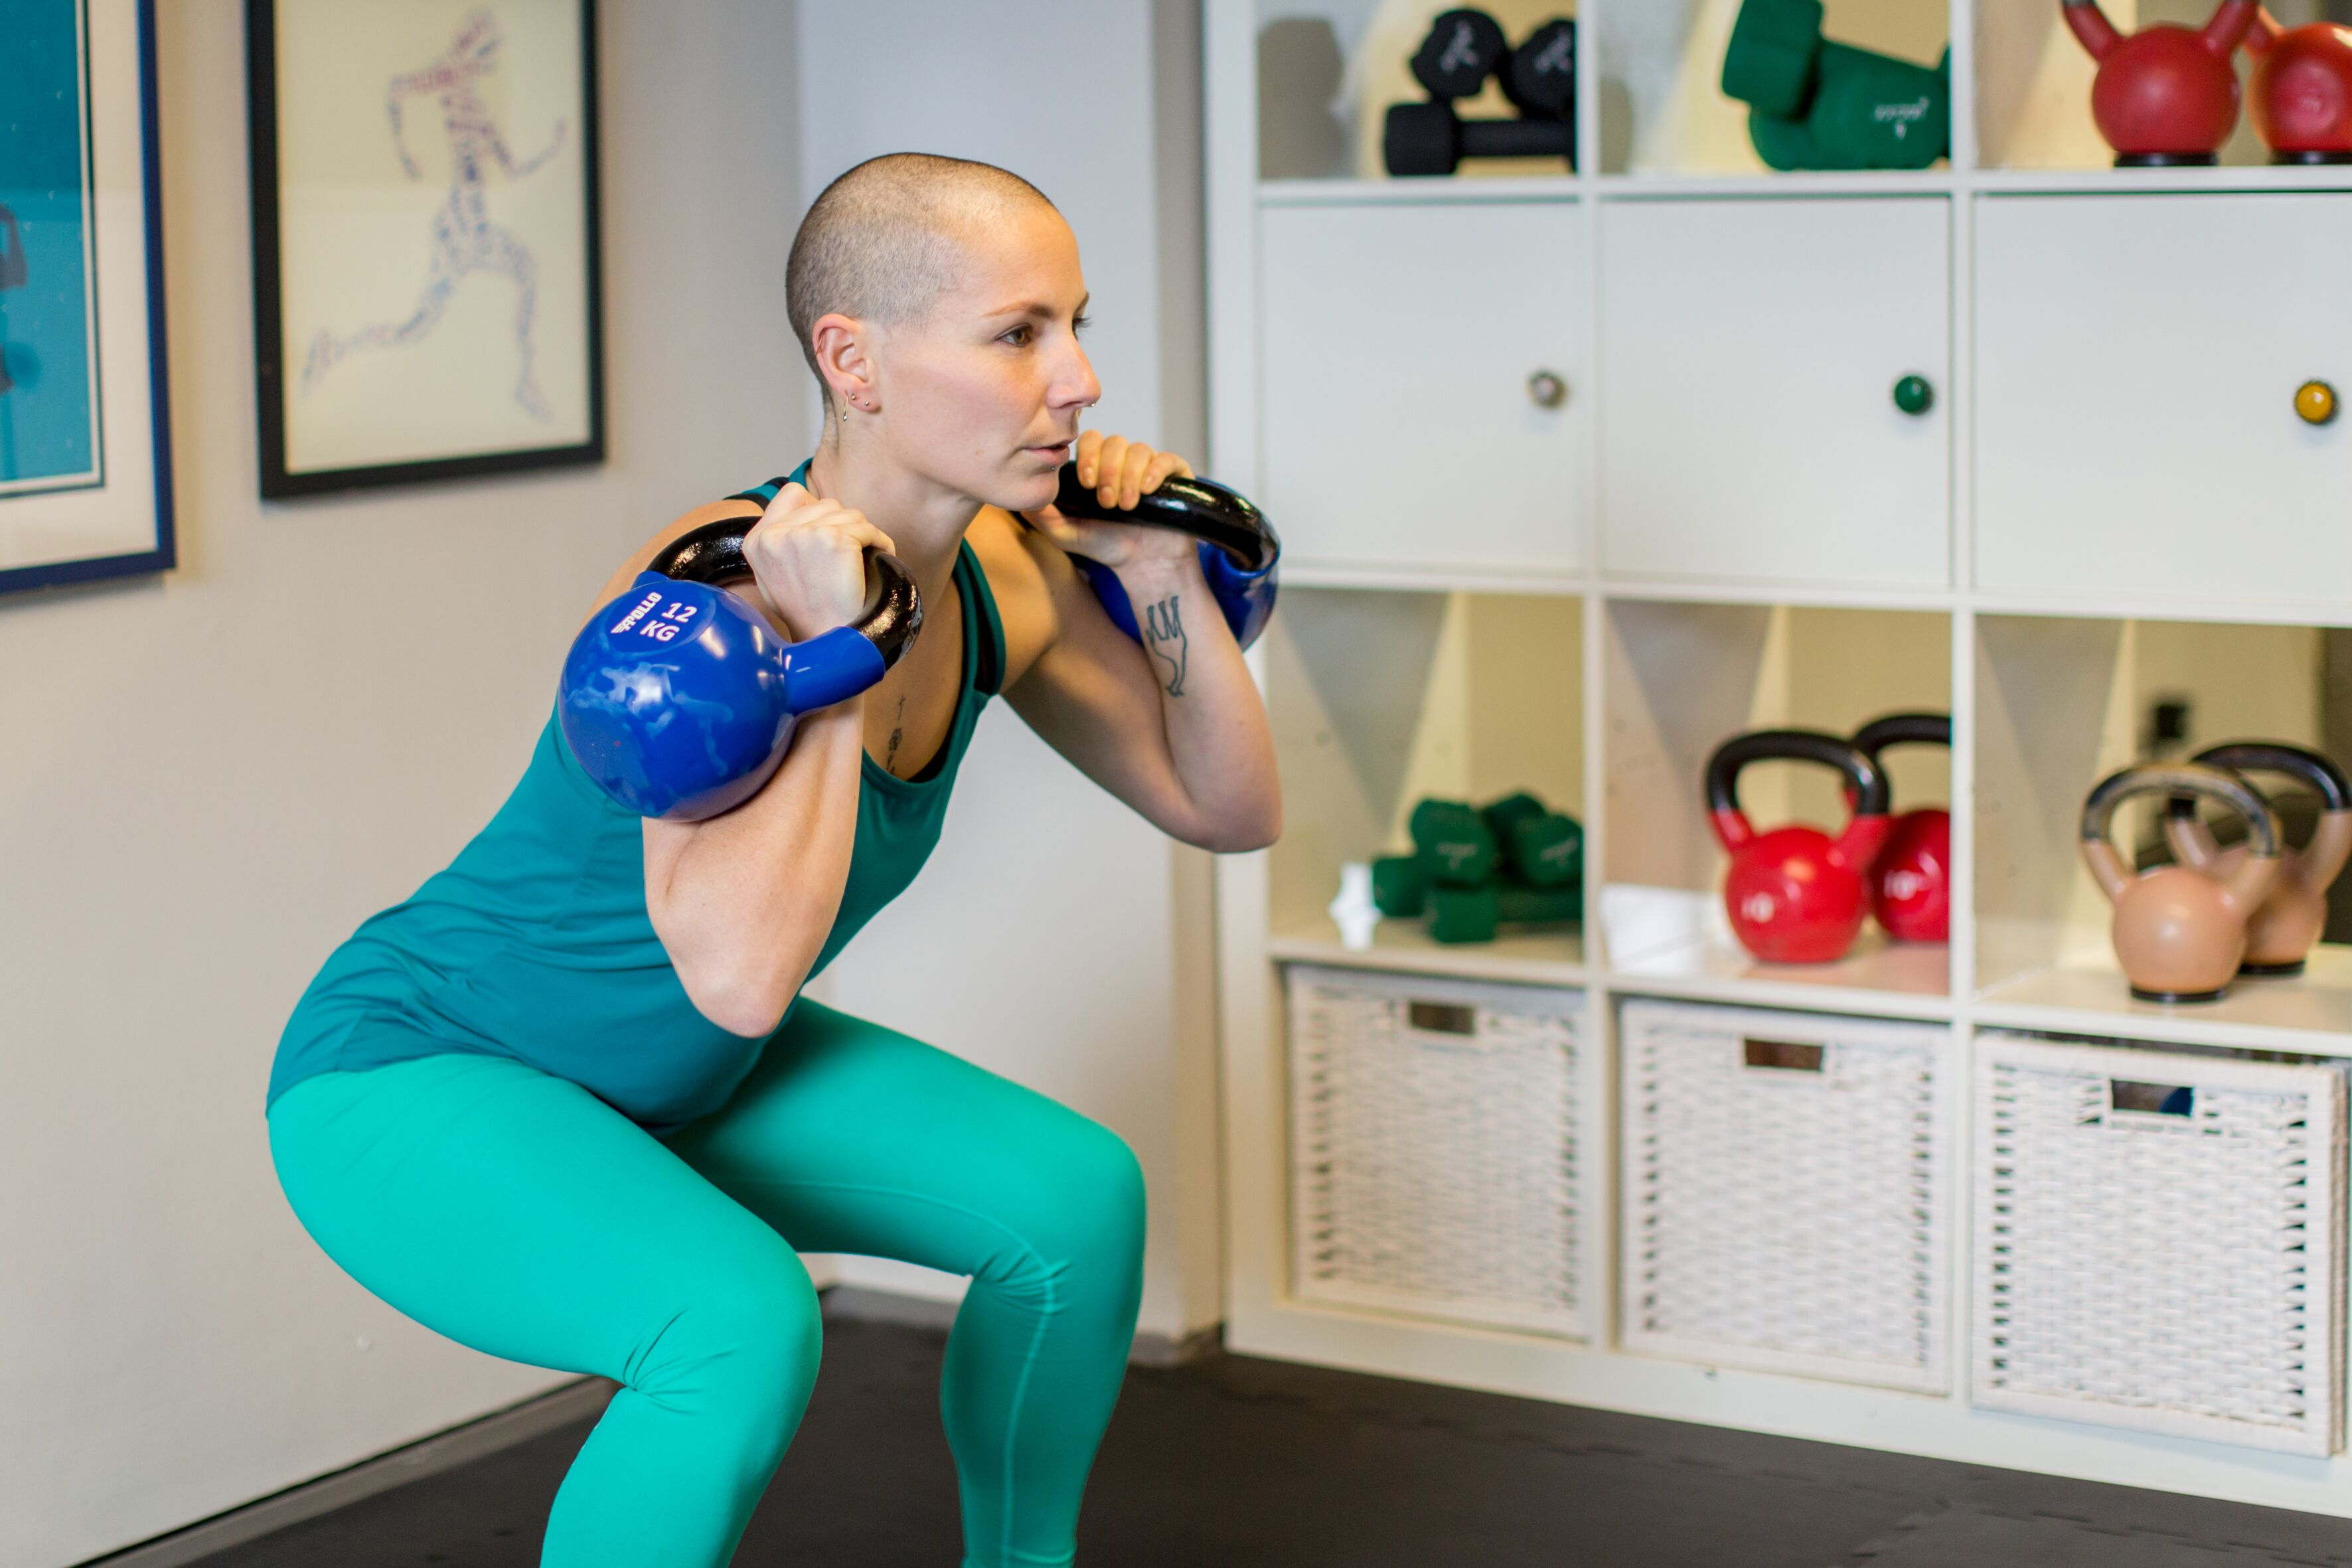 Helen Weller Personal Trainer in London